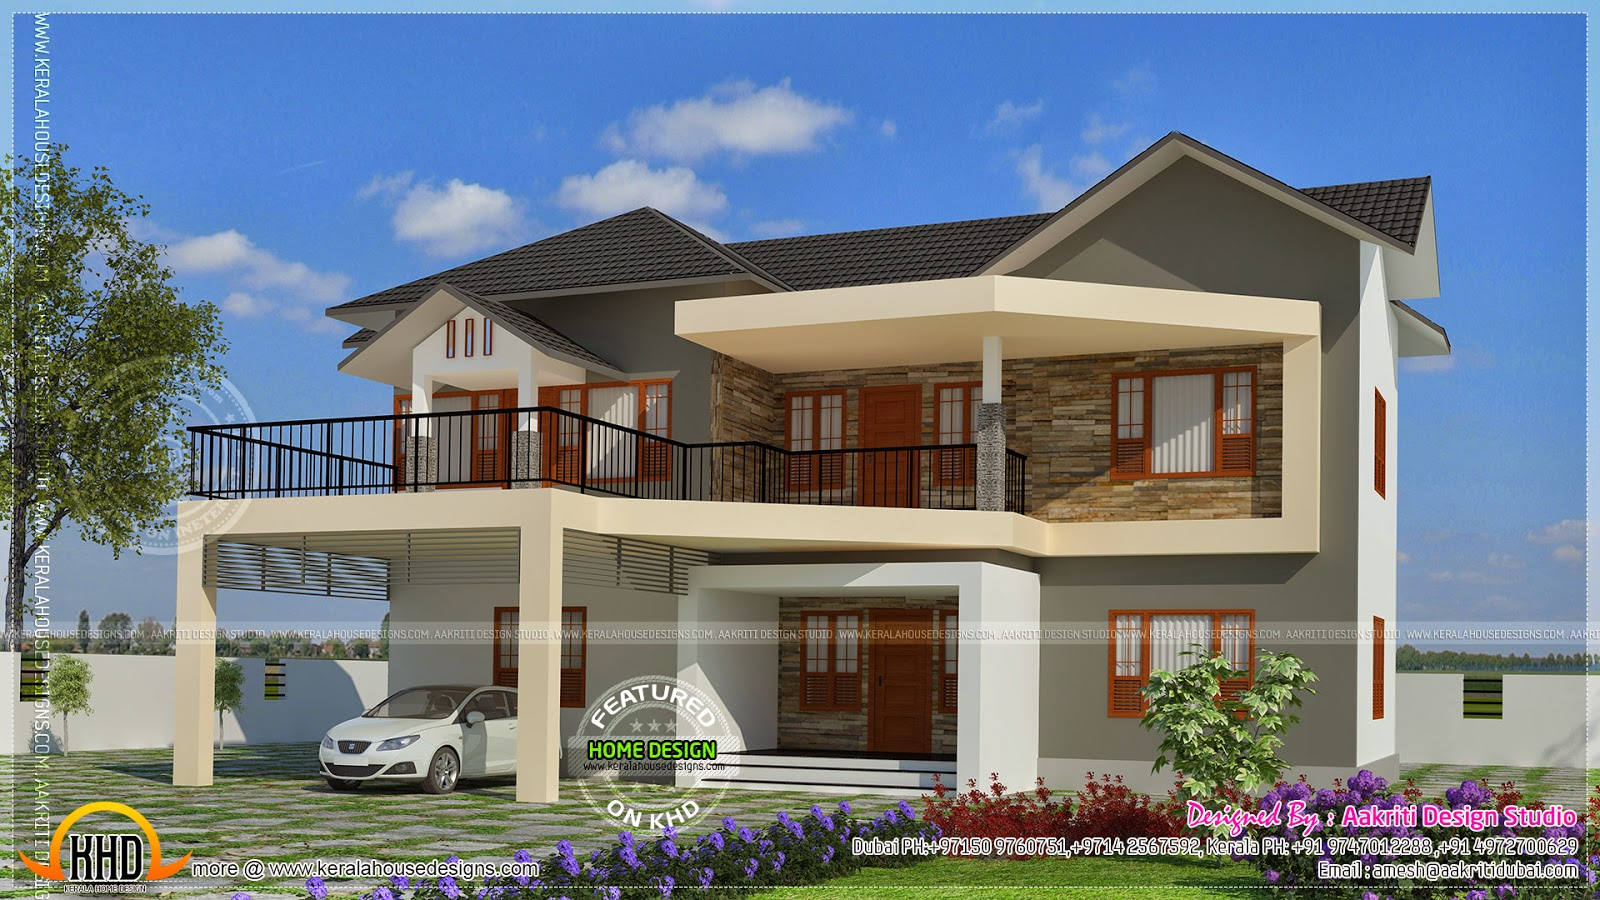 Elegant villa exterior design facilities of this house